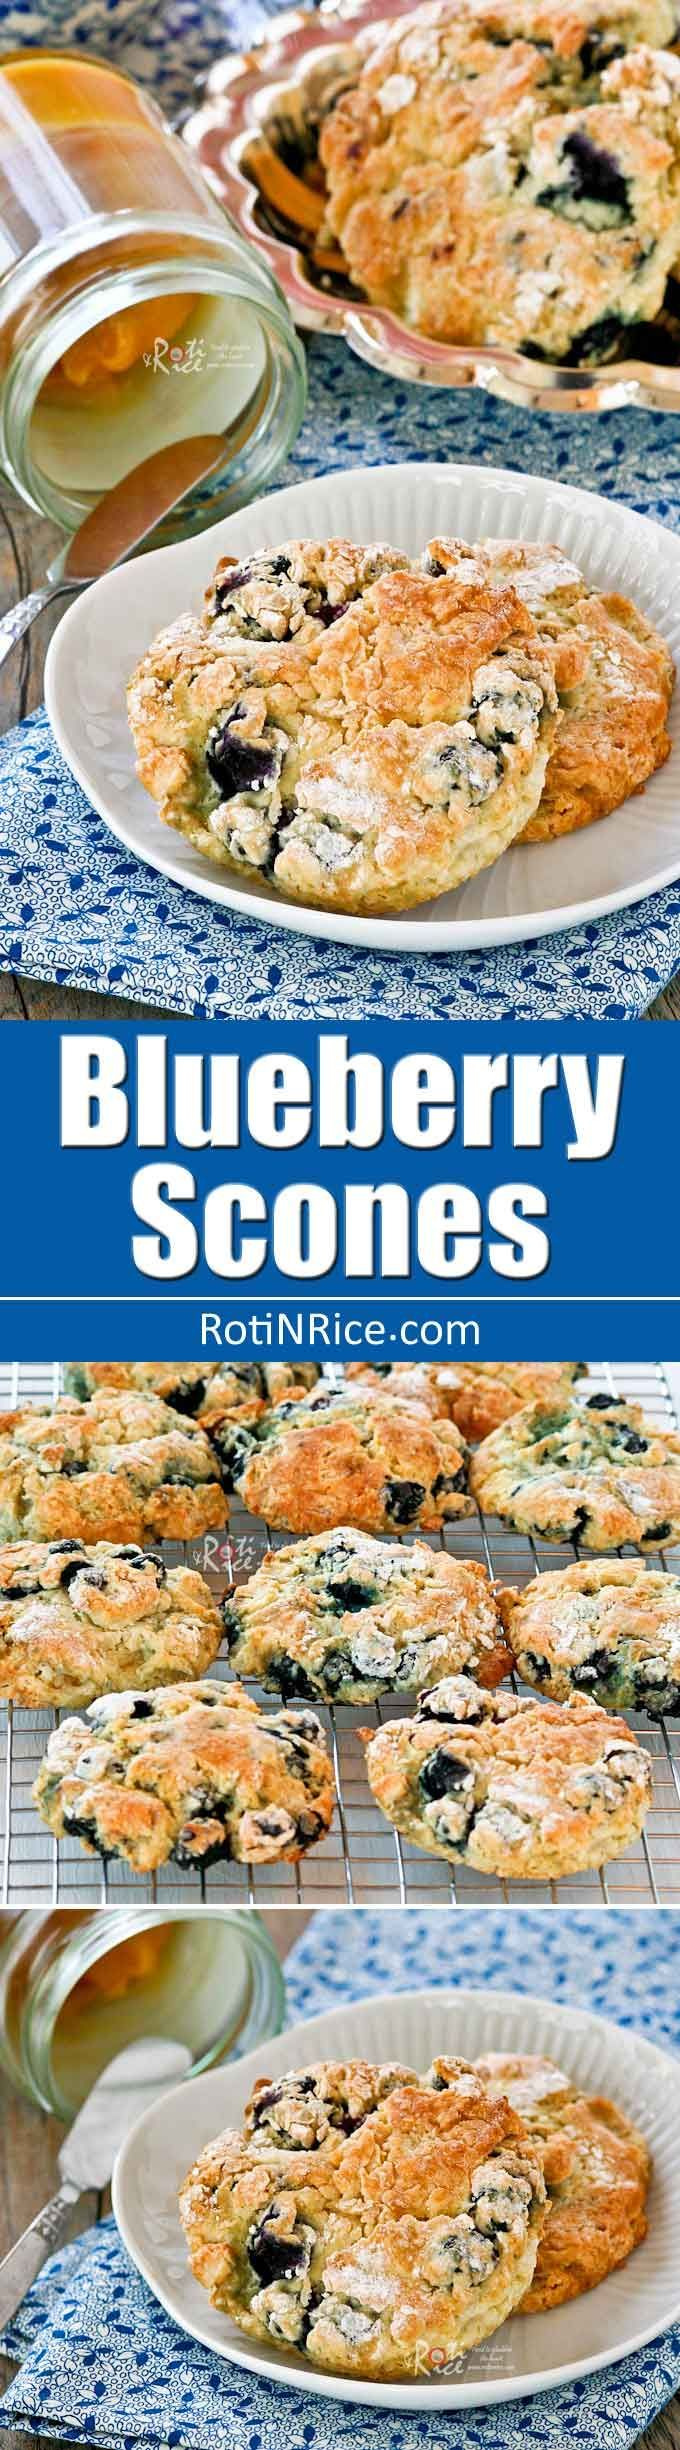 Extra tender Blueberry Scones made with cake flour or soft winter wheat. Delicious served with lemon curd and freshly whipped cream. | RotiNRice.com